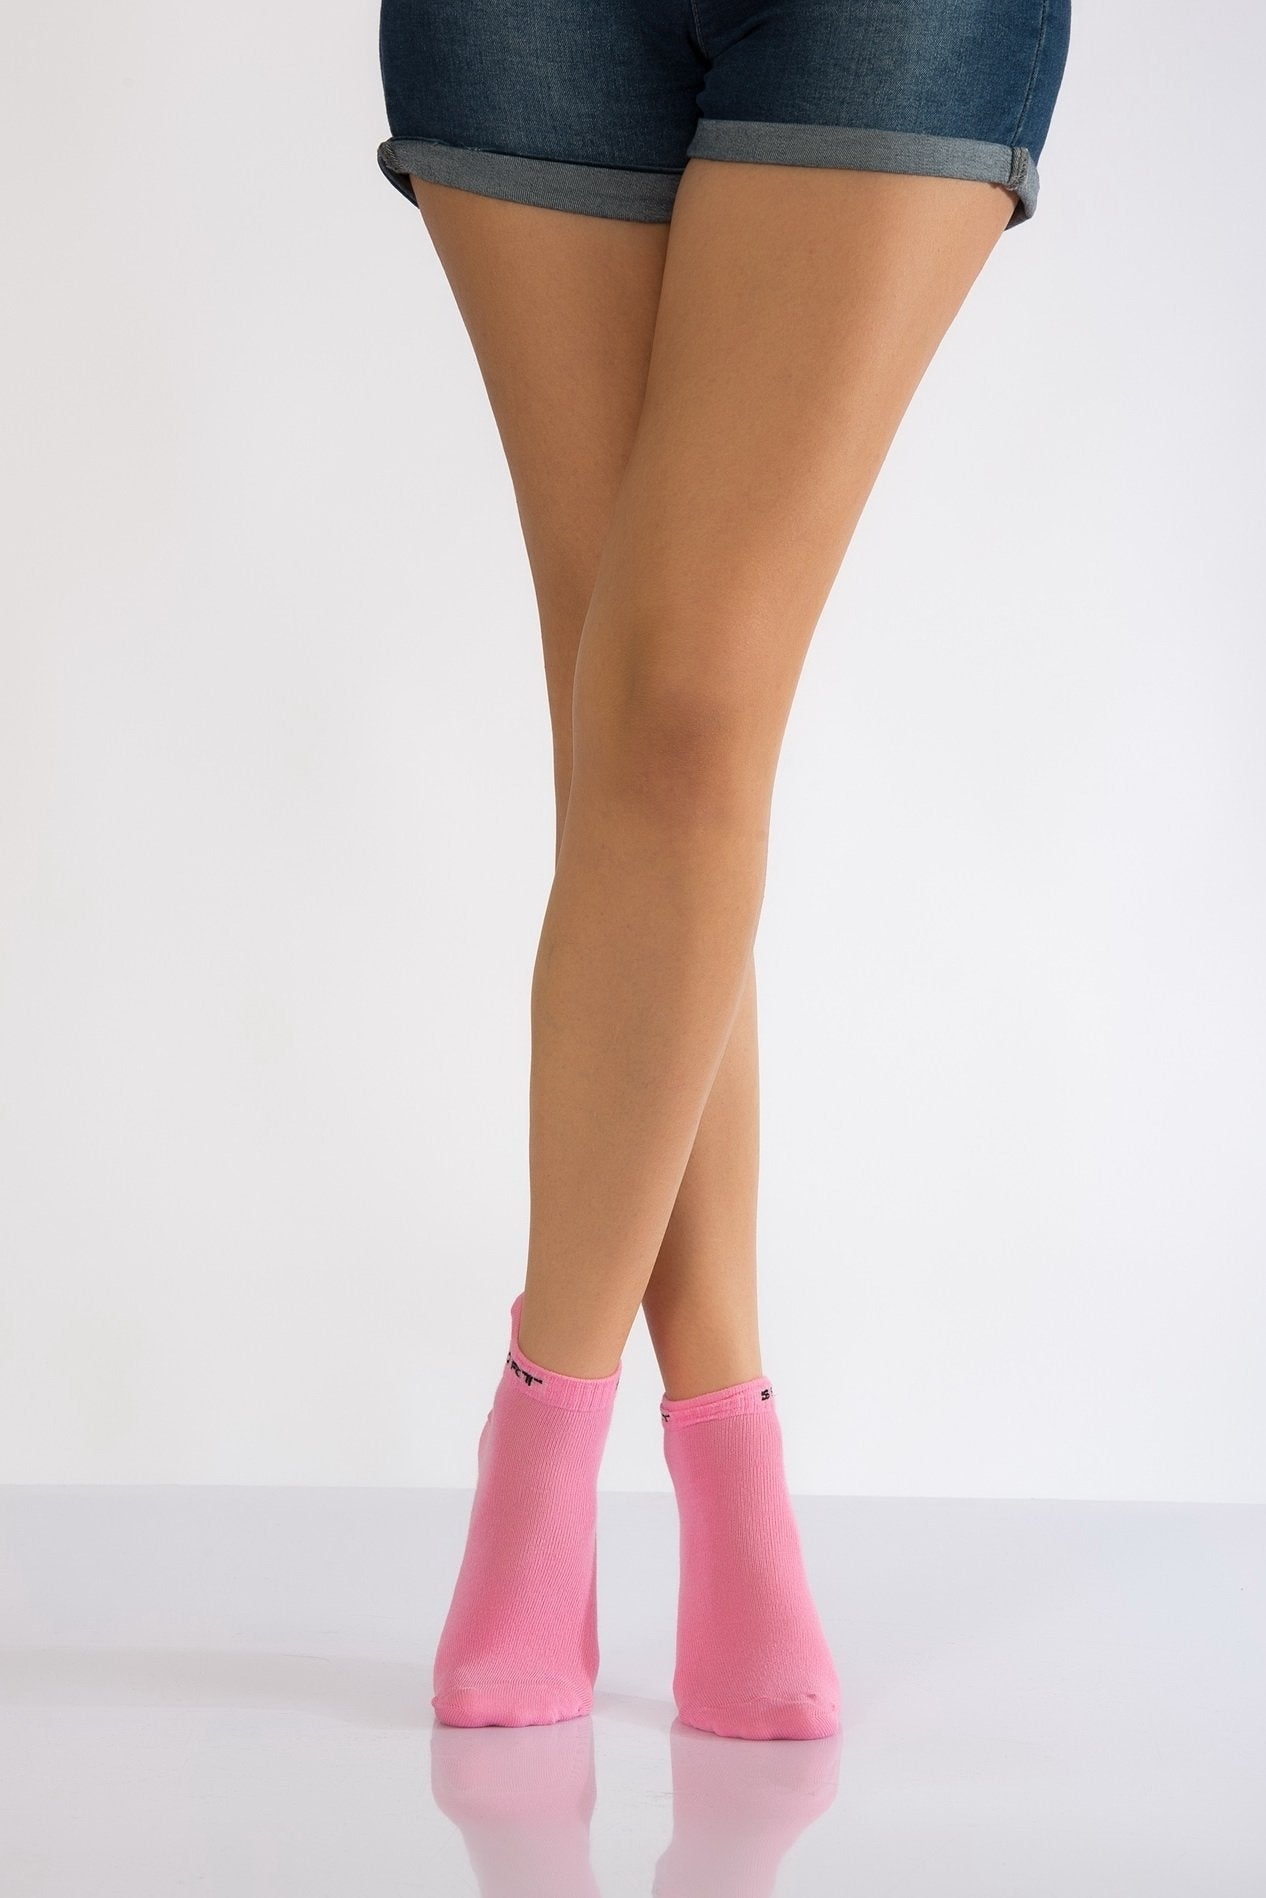 Women's Pink Booties Socks- 3 Pairs